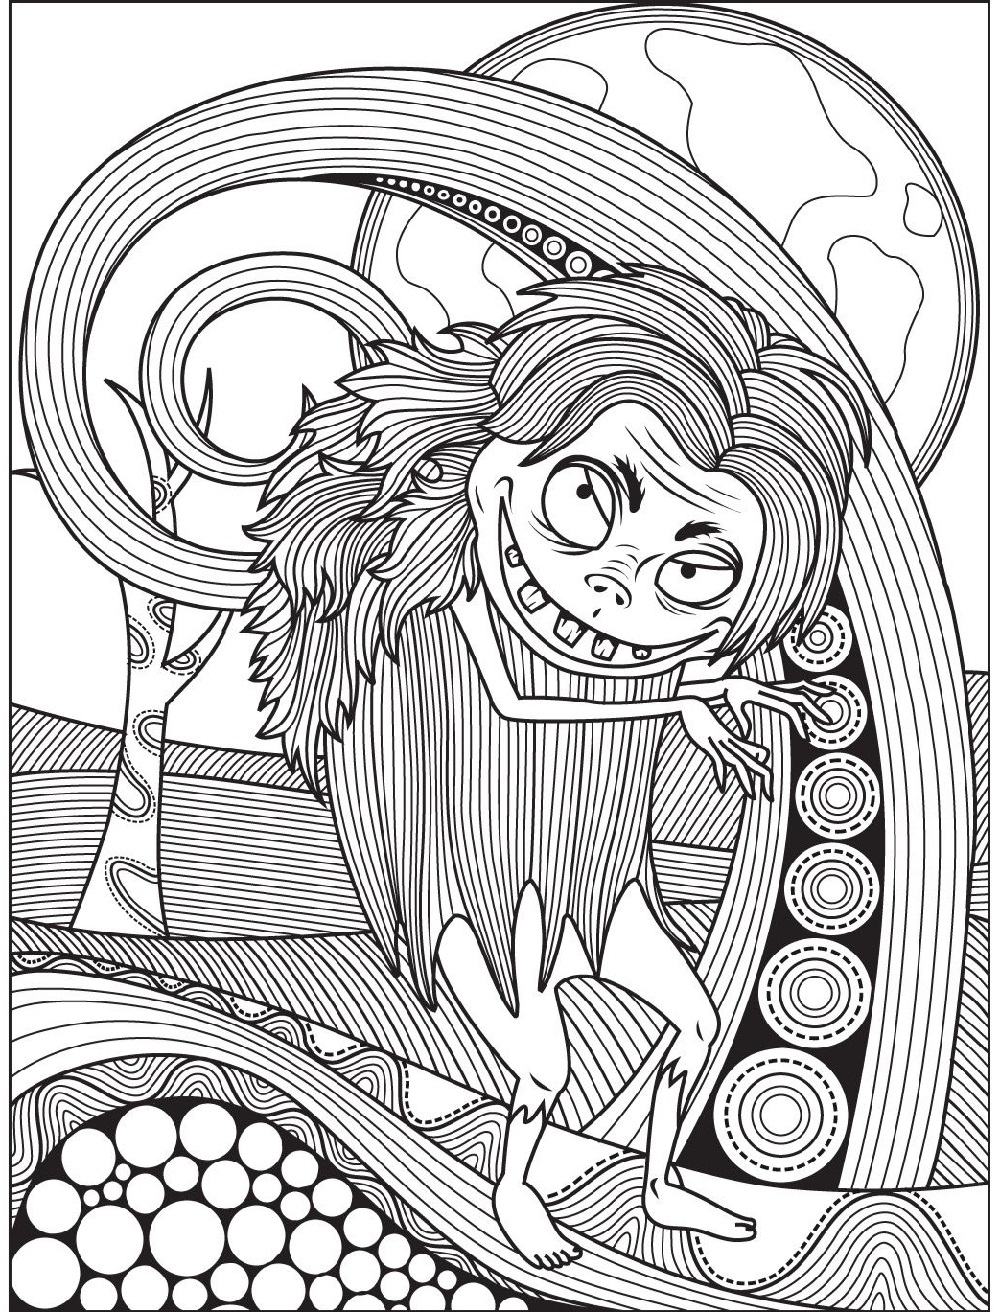 Free Coloring Apps For Adults Colorish